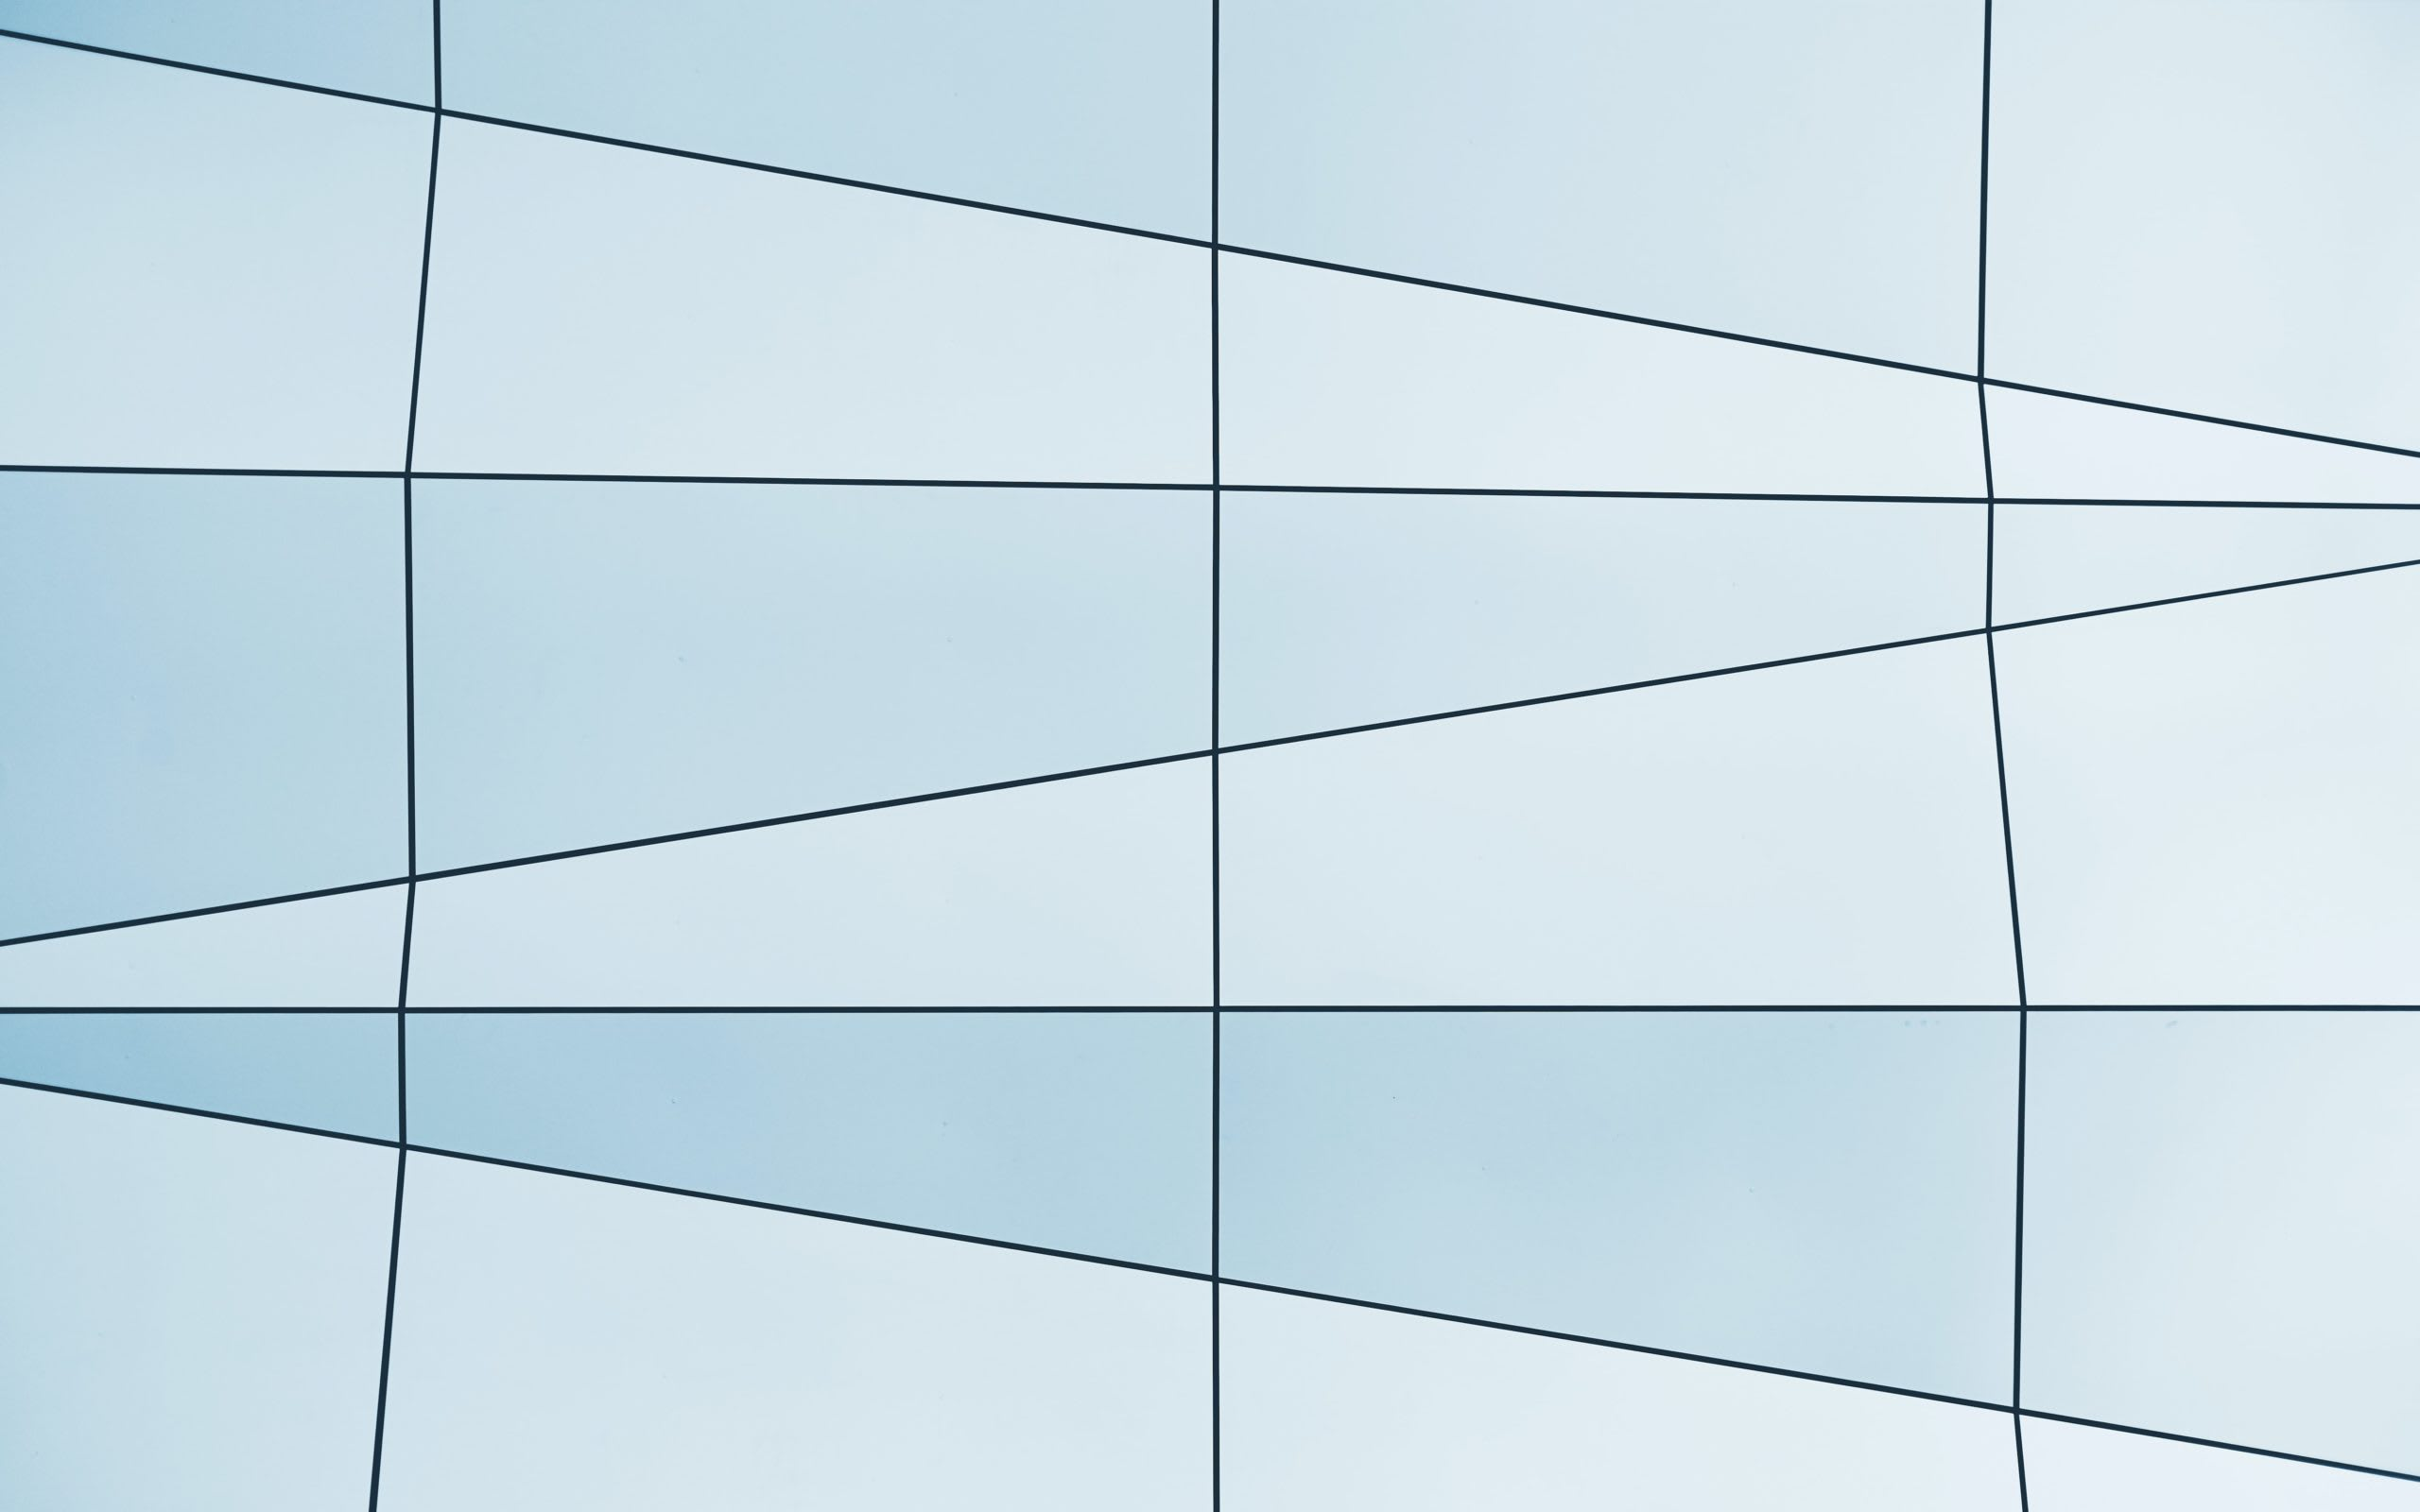 abstract image of lines